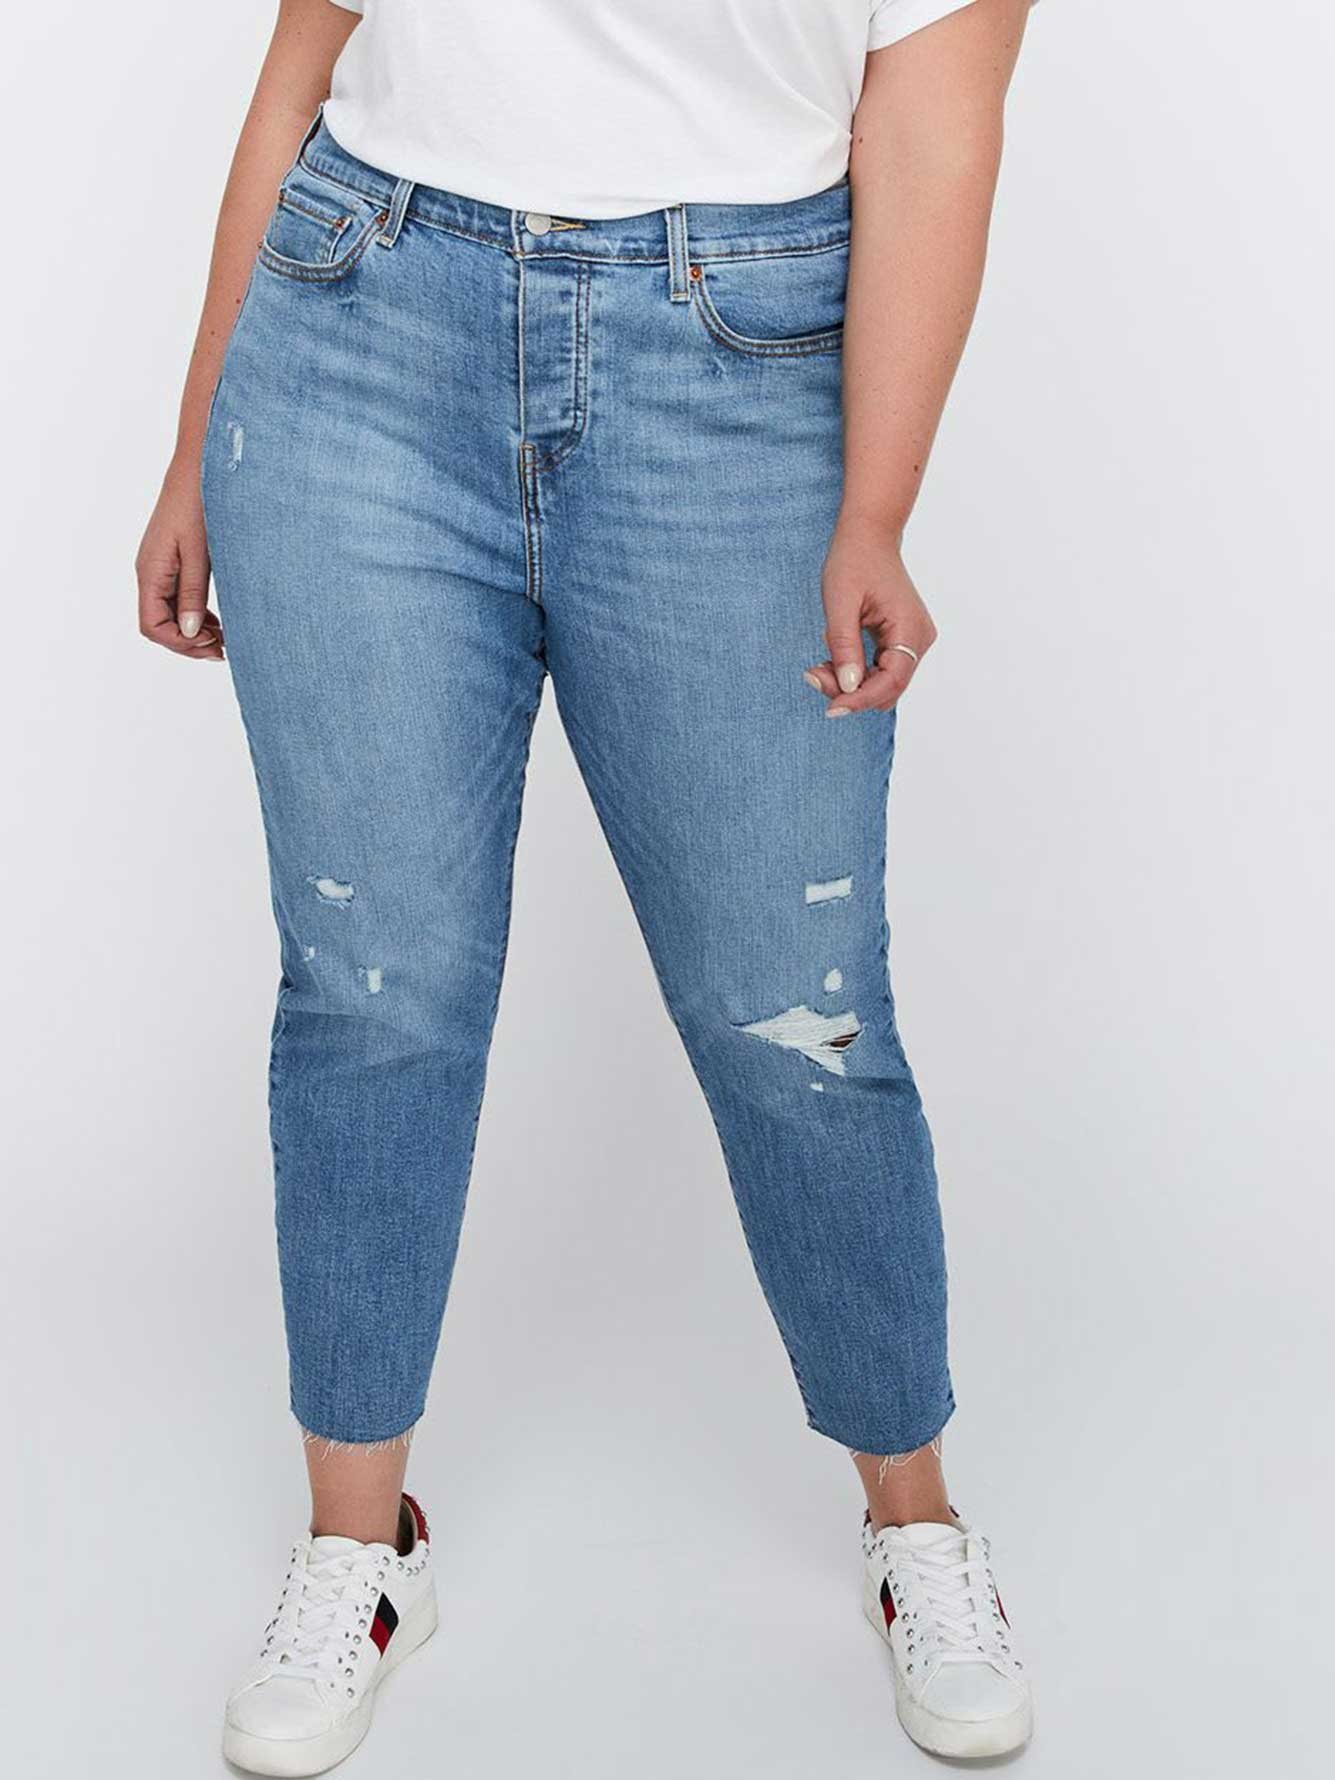 ce6a9f70cf Wedgie Blue Spice Skinny Jeans - Levi s